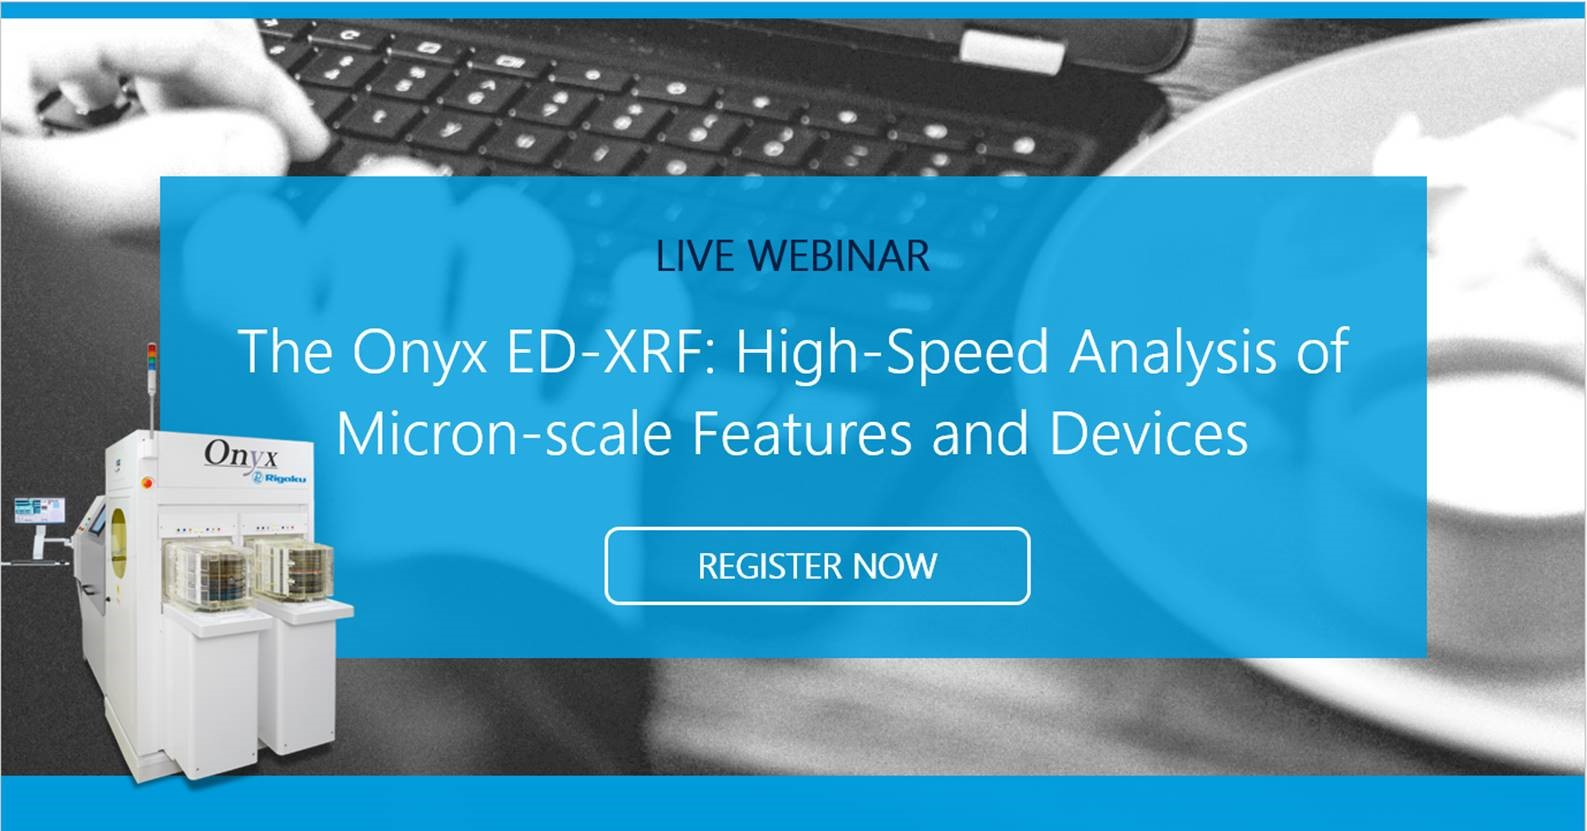 The Onyx ED-XRF: High-Speed Analysis of Micron-scale Features and Devices